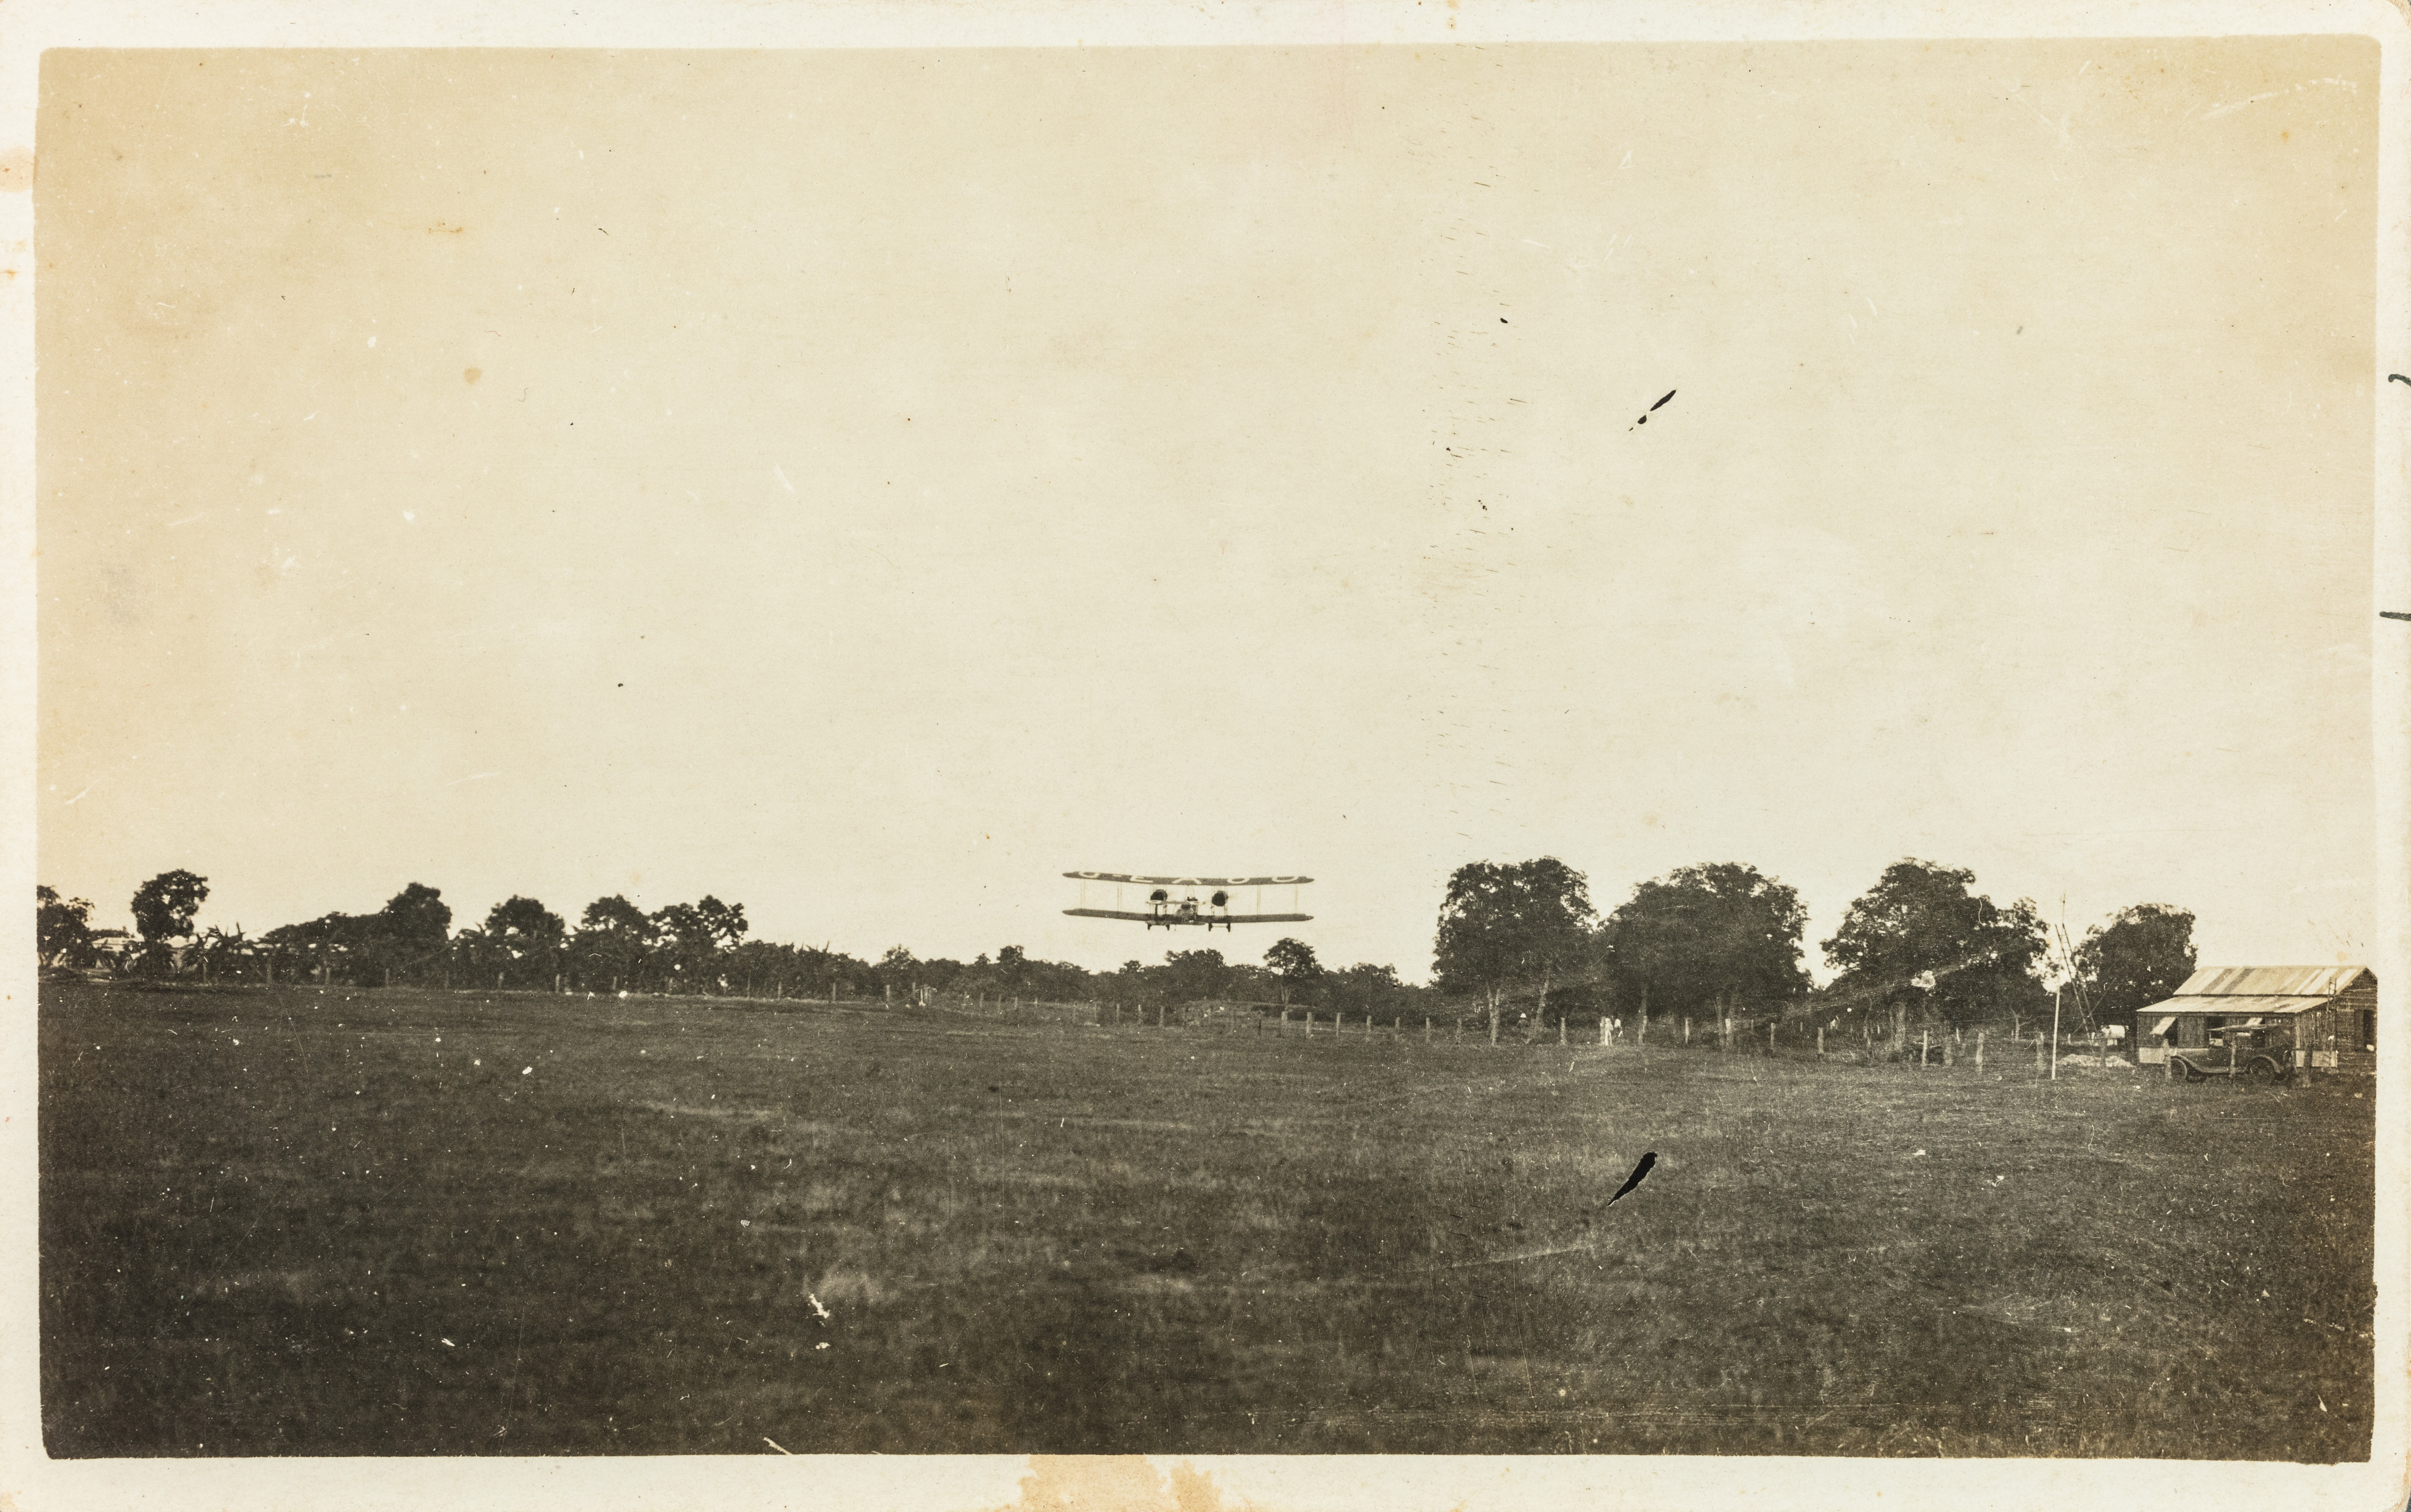 Ross and Keith Smith's aeroplane coming in to land in Darwin on 10 December 1919.